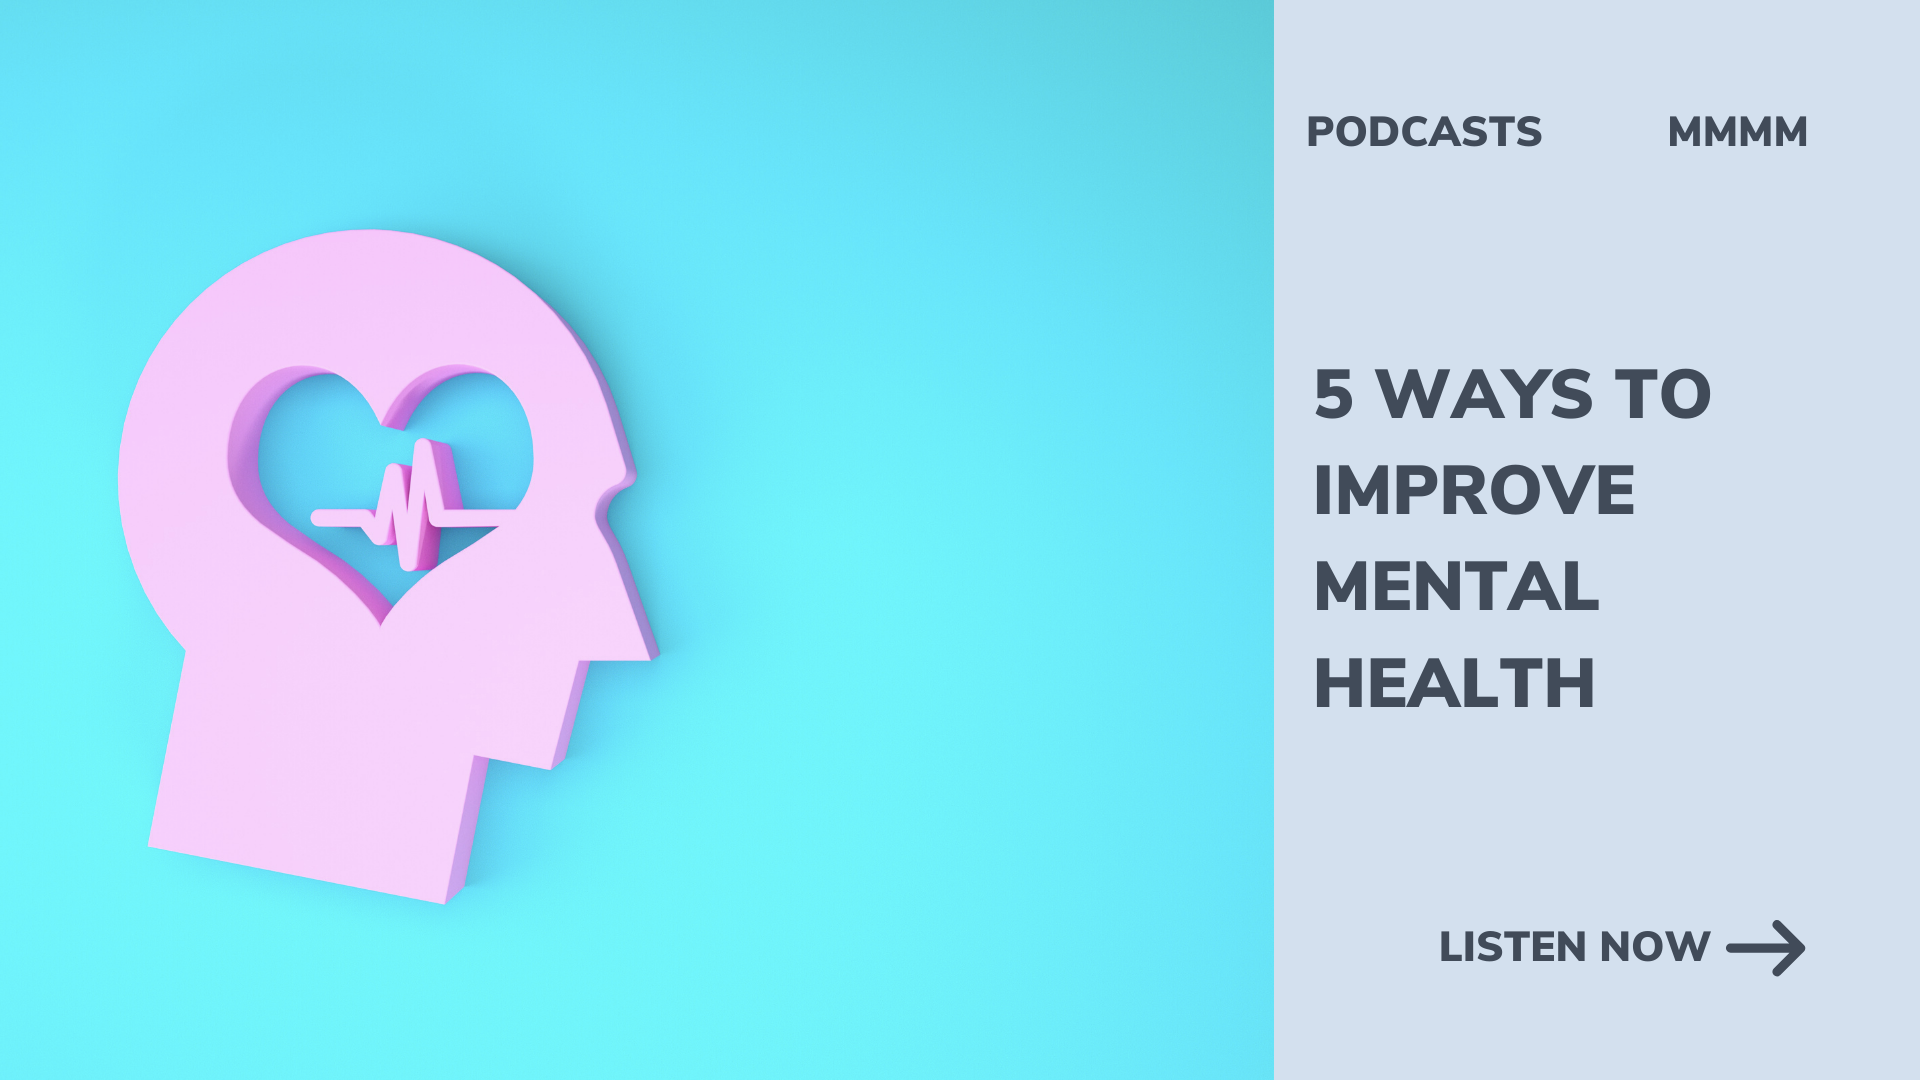 5 way to improve mental health